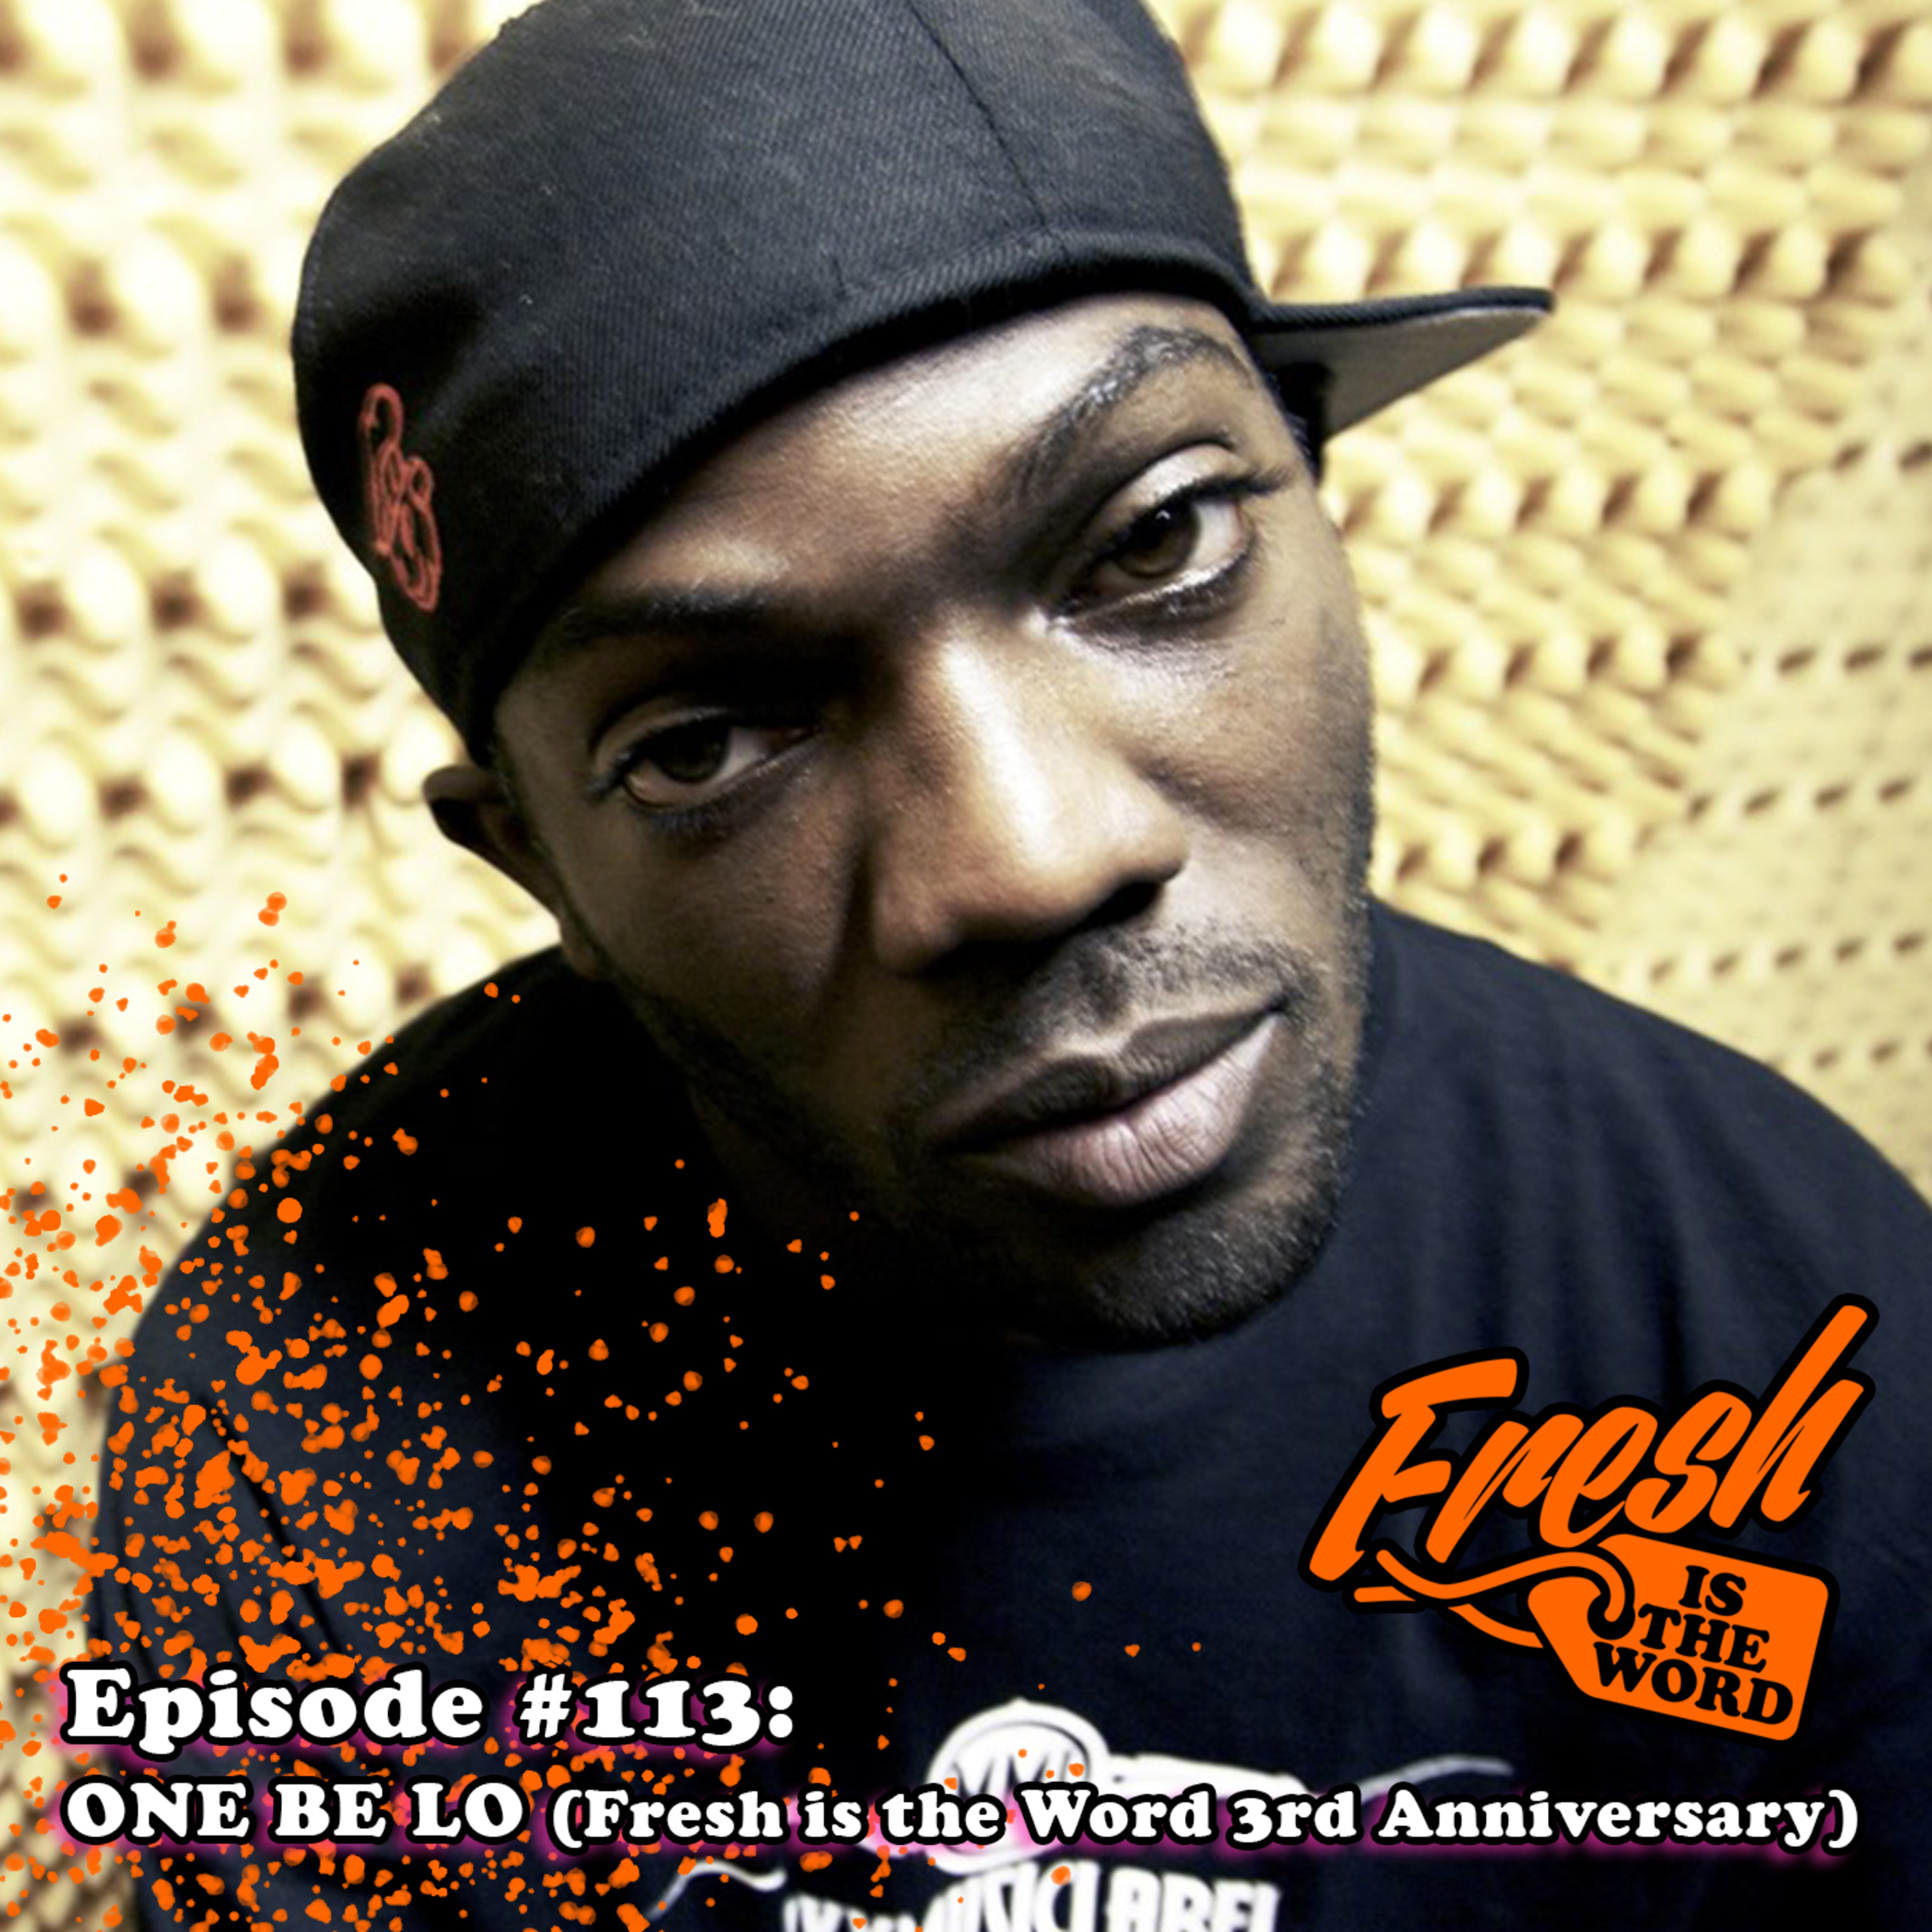 Episode #113: One Be Lo - Michigan Hip-Hop Artist (Fresh is the Word 3rd Anniversary)